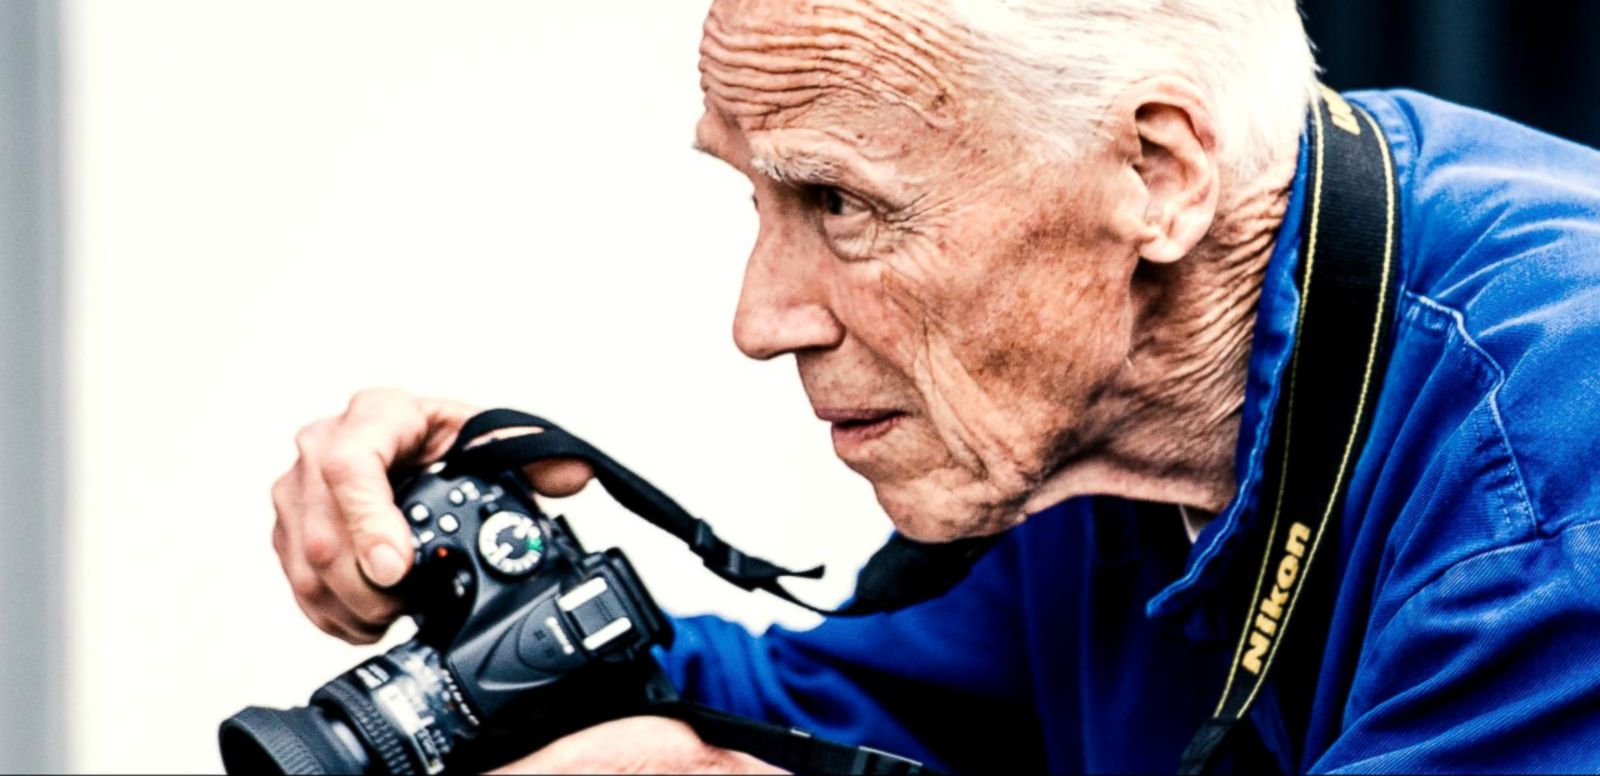 VIDEO: Legendary Fashion Photographer Bill Cunningham Dies After Suffering From a Stroke